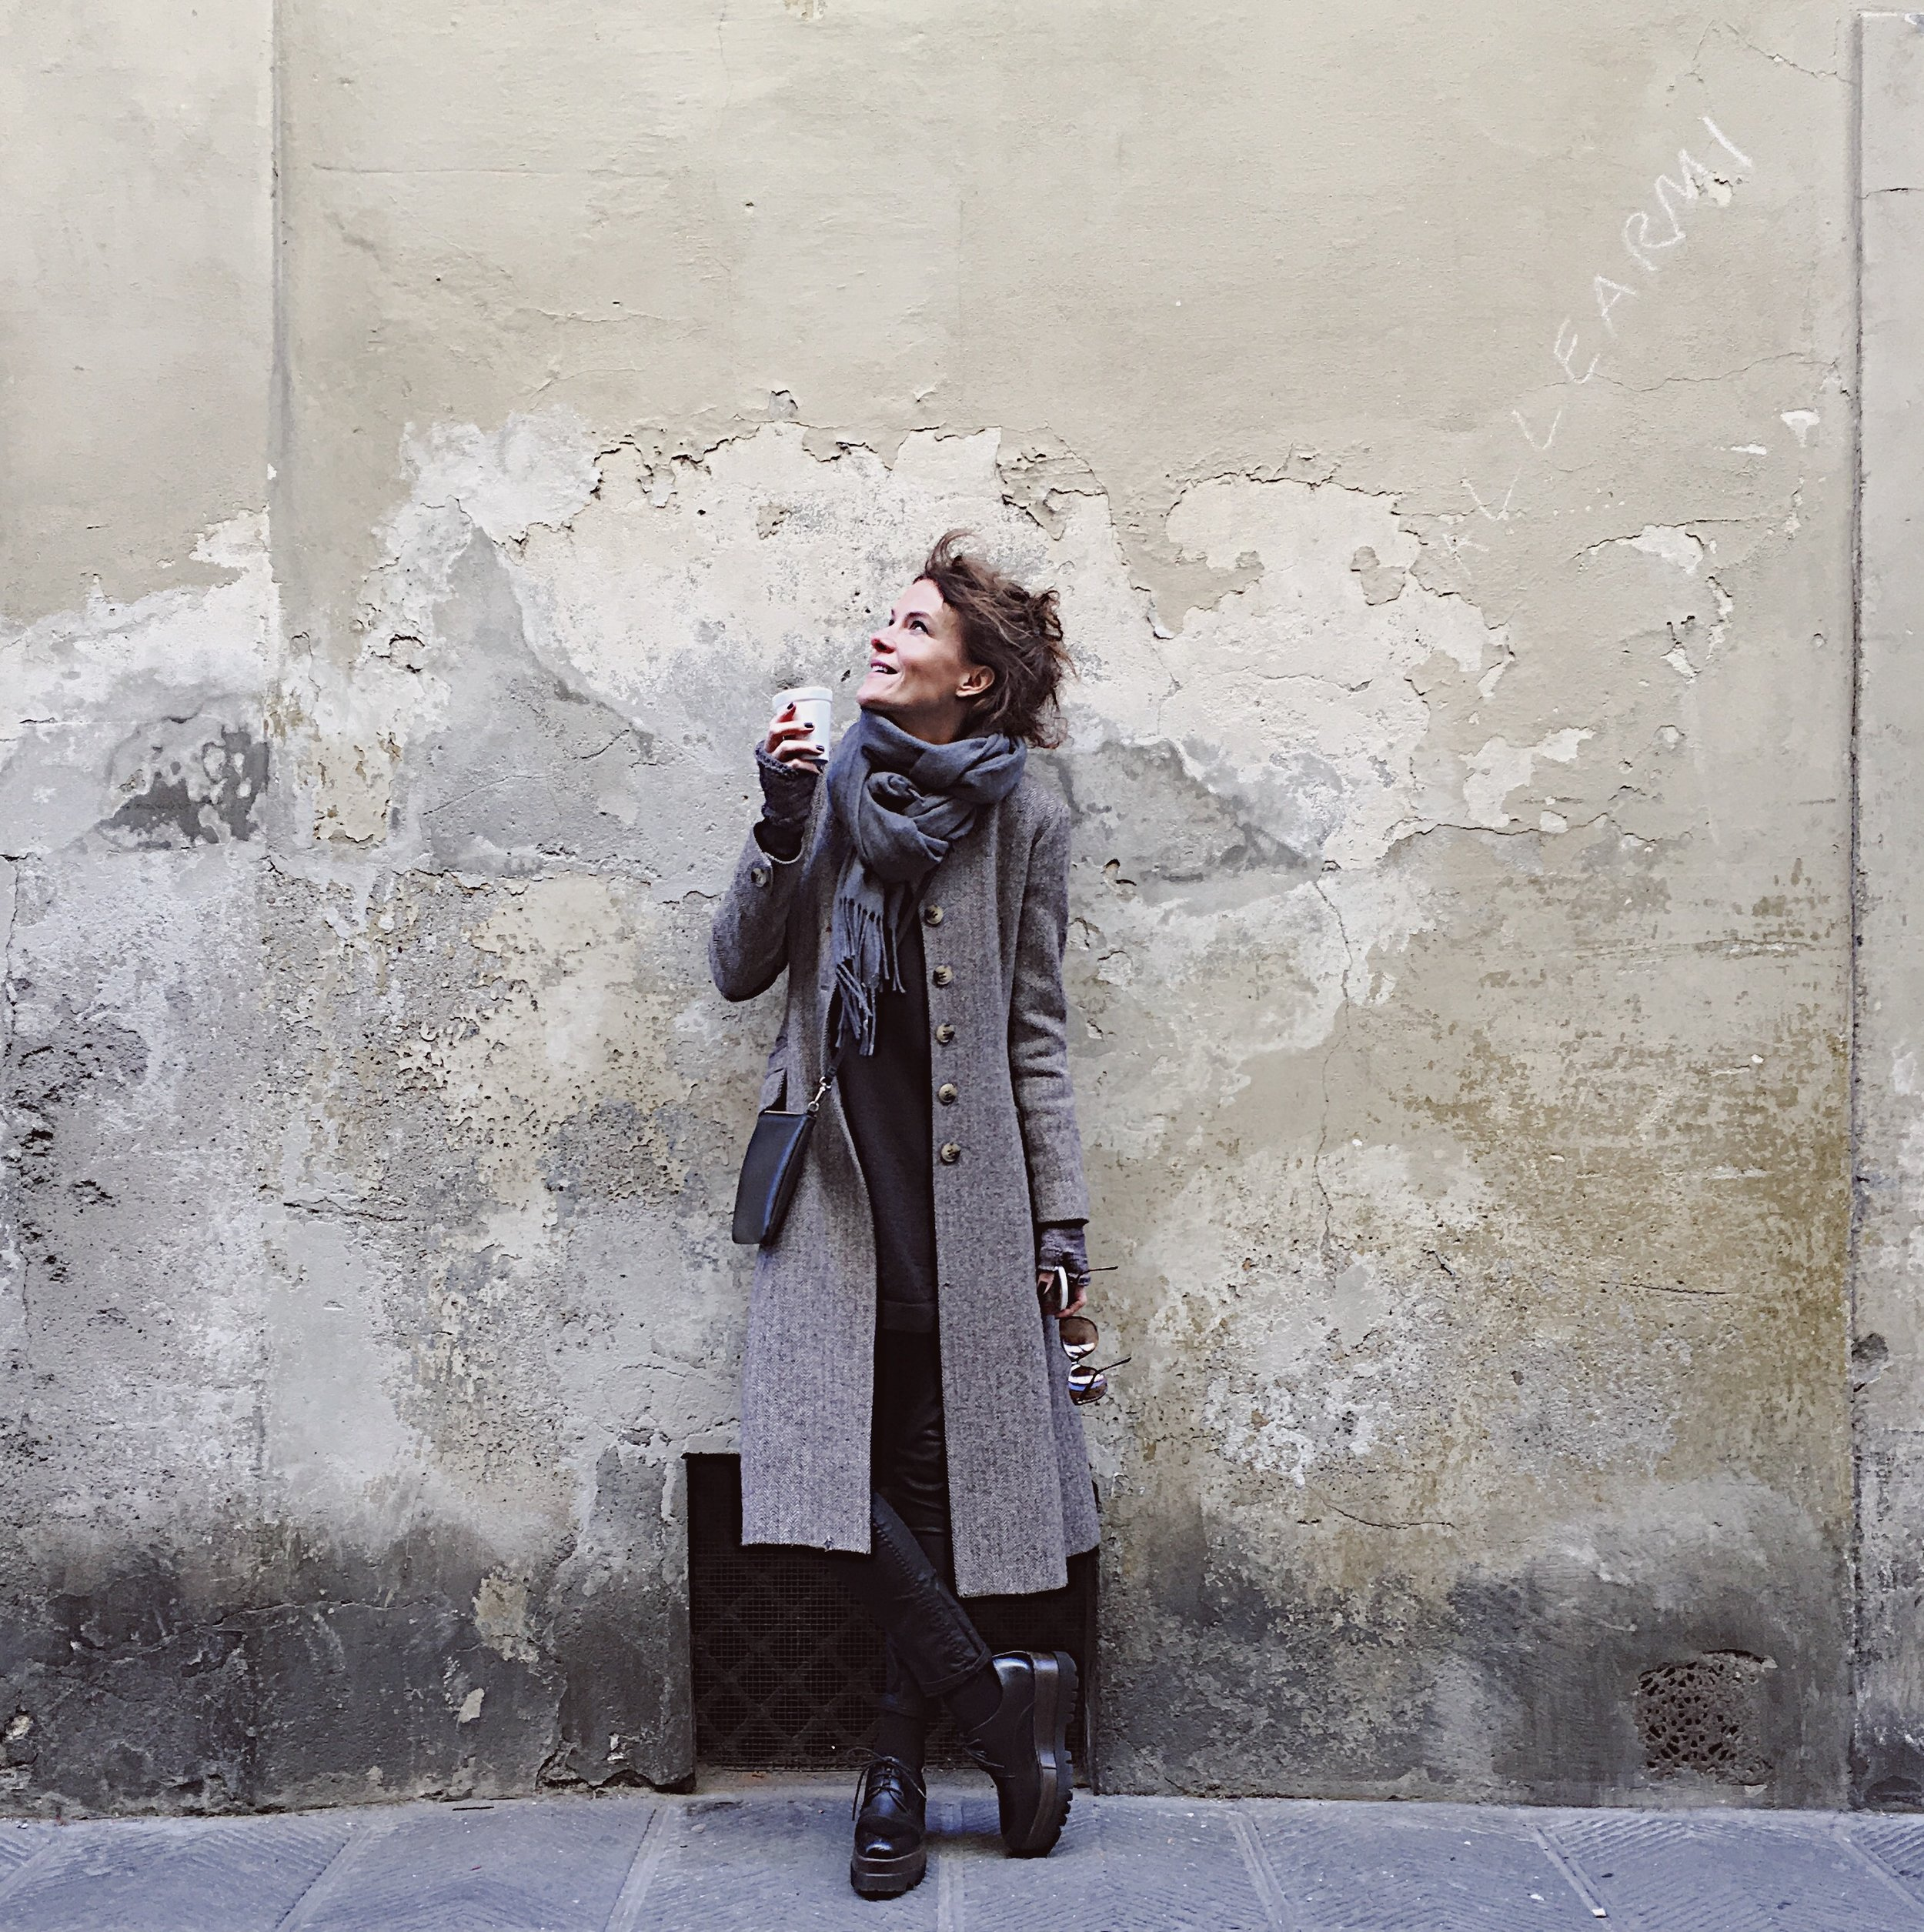 Coat by Toast, Shoes from an independent shop in Arezzo, Italy